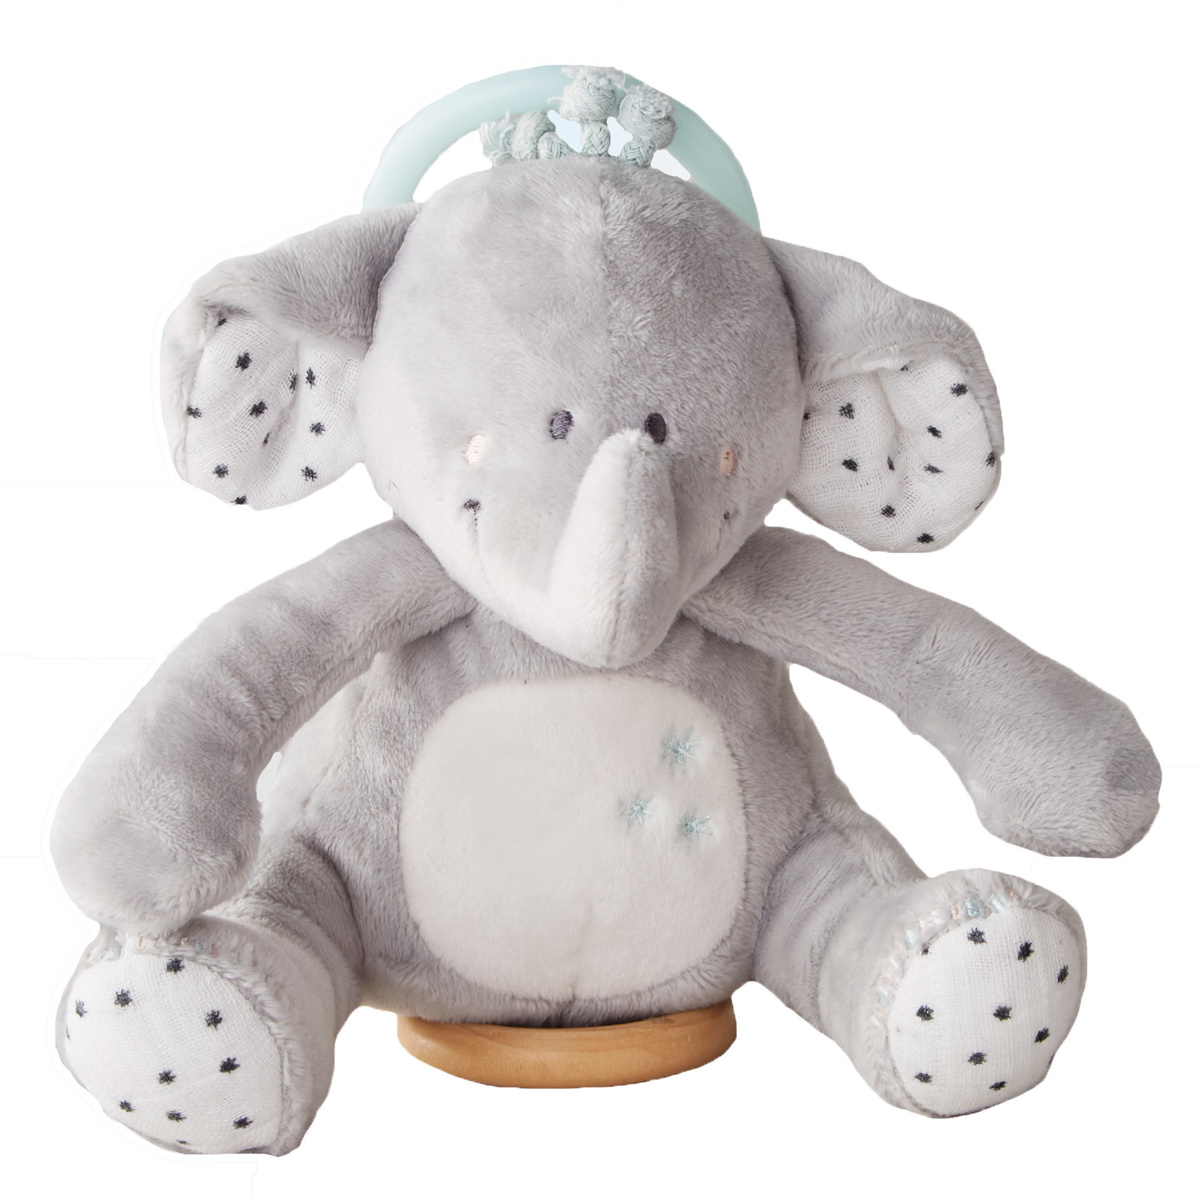 Veloudoux Anna decorative mini musical soft toy from the Anna & Milo collection